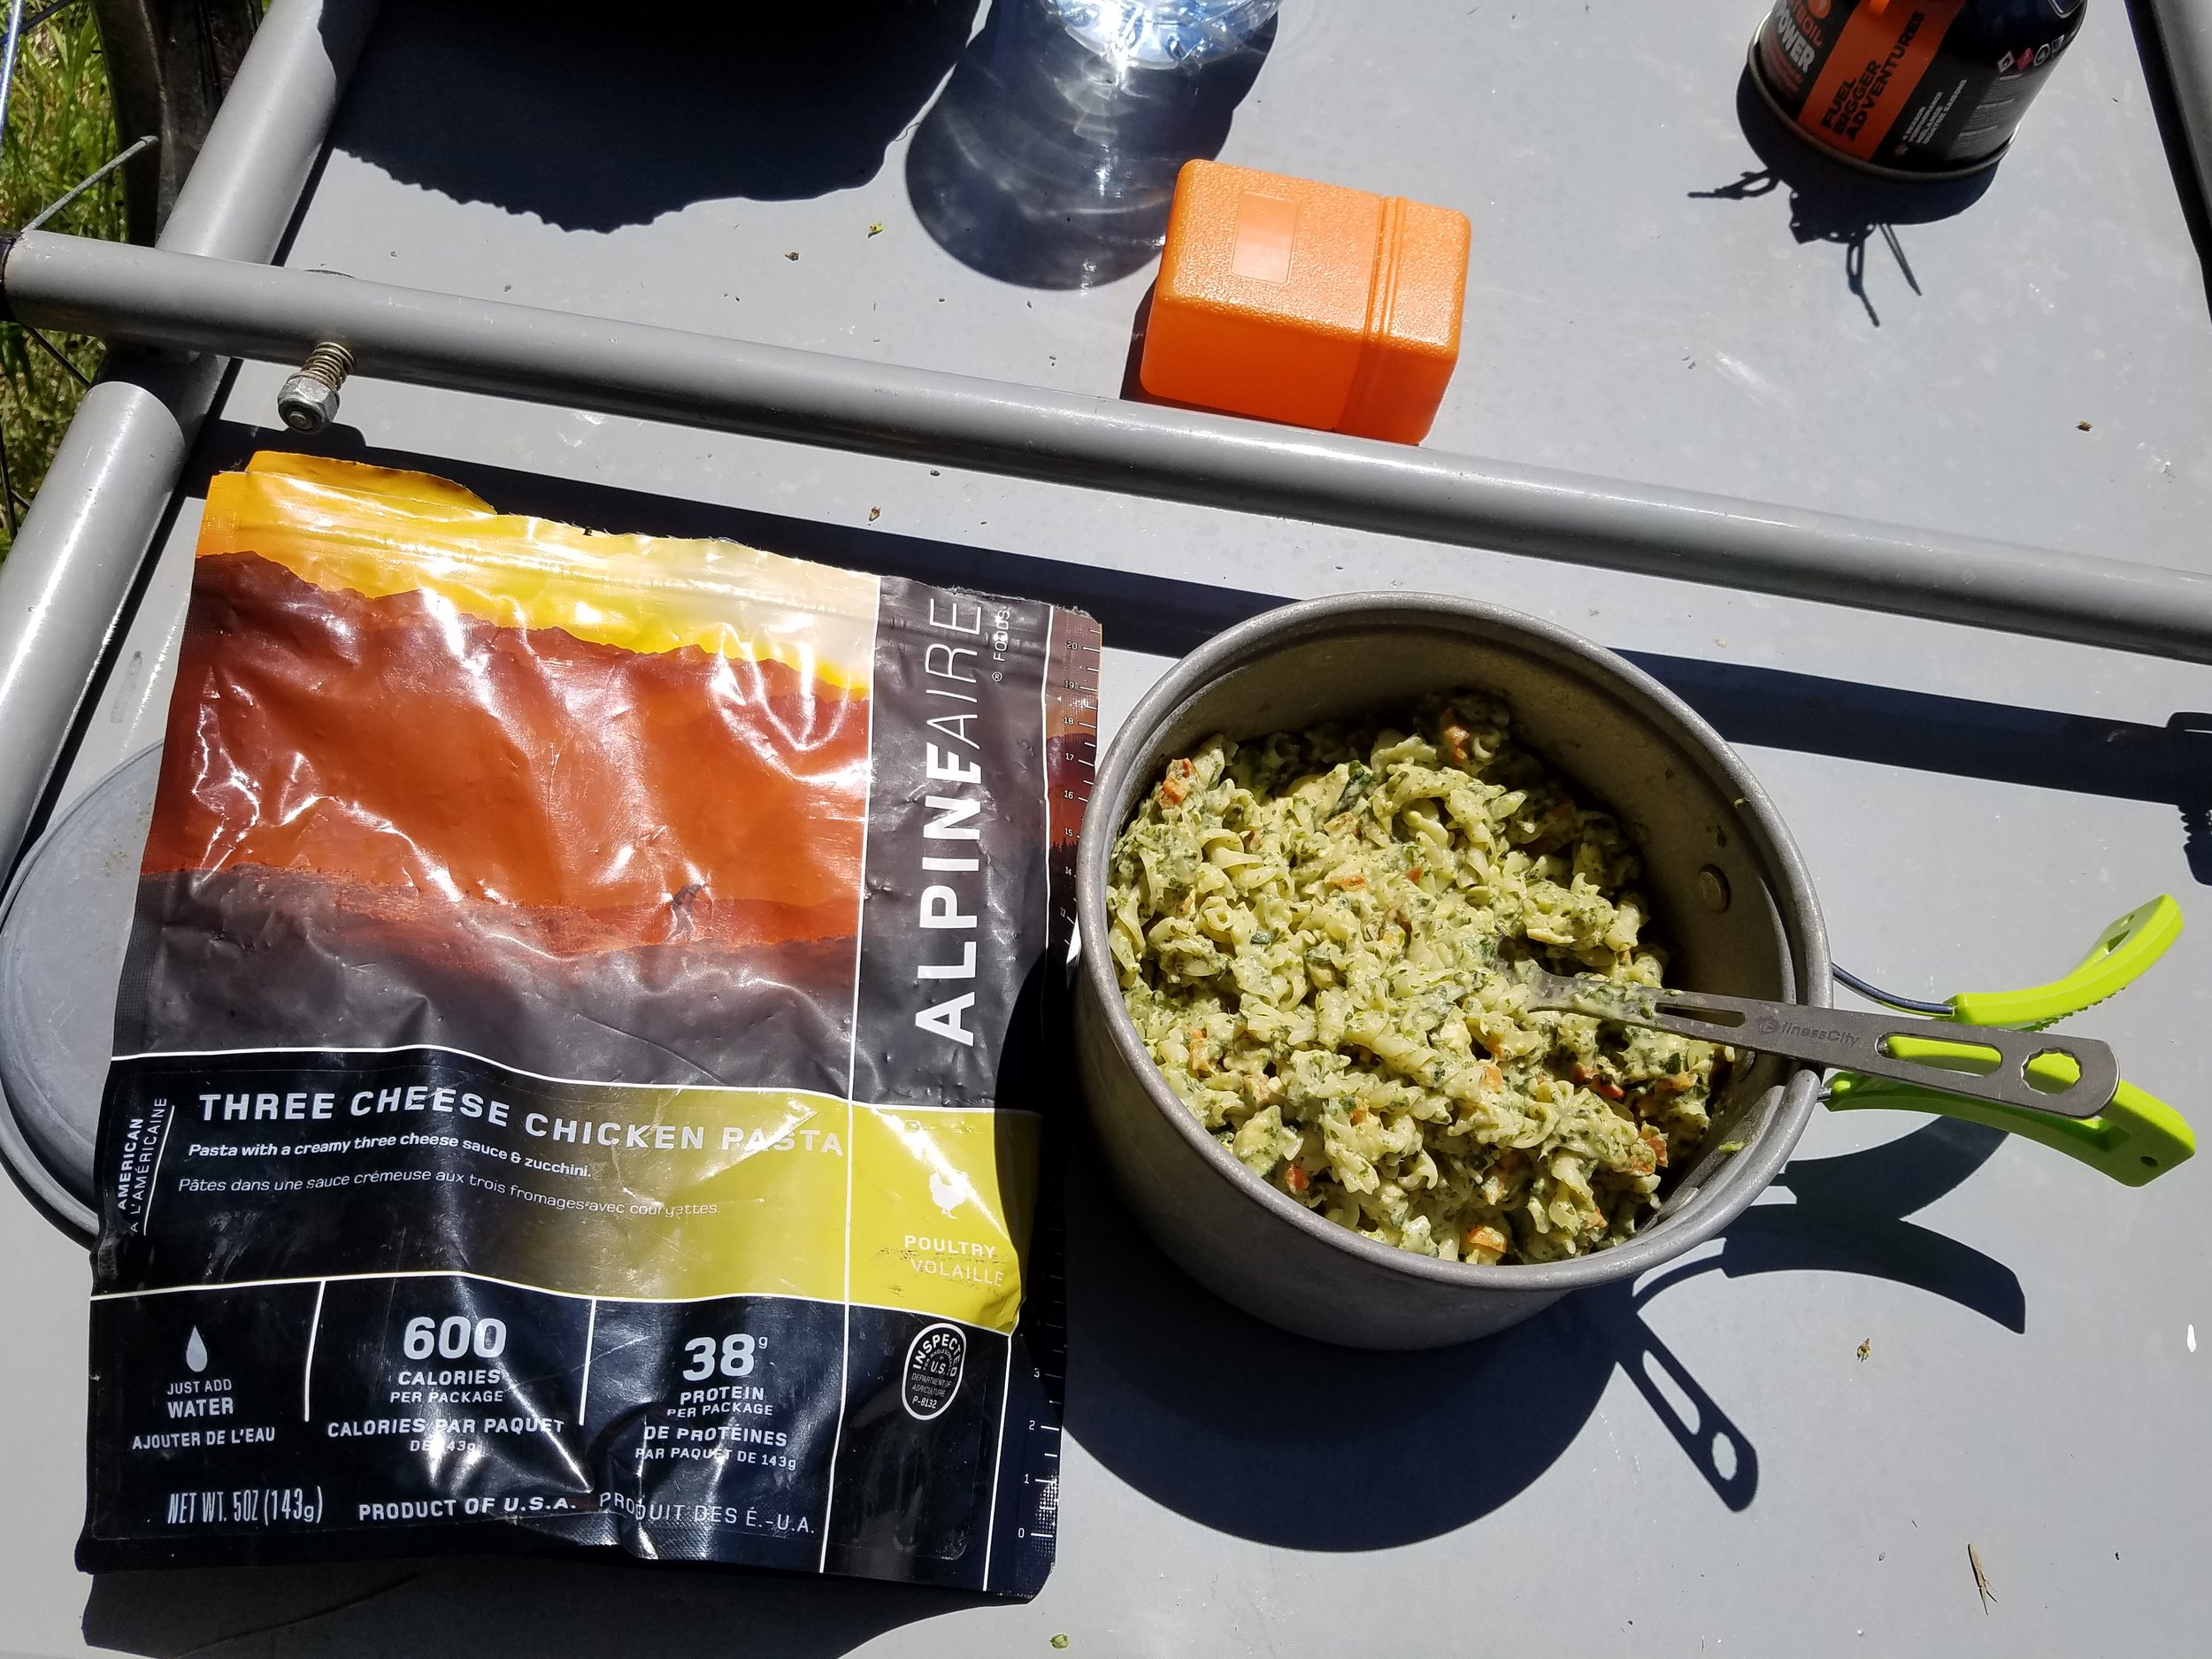 Zucchini and some other stuff pasta